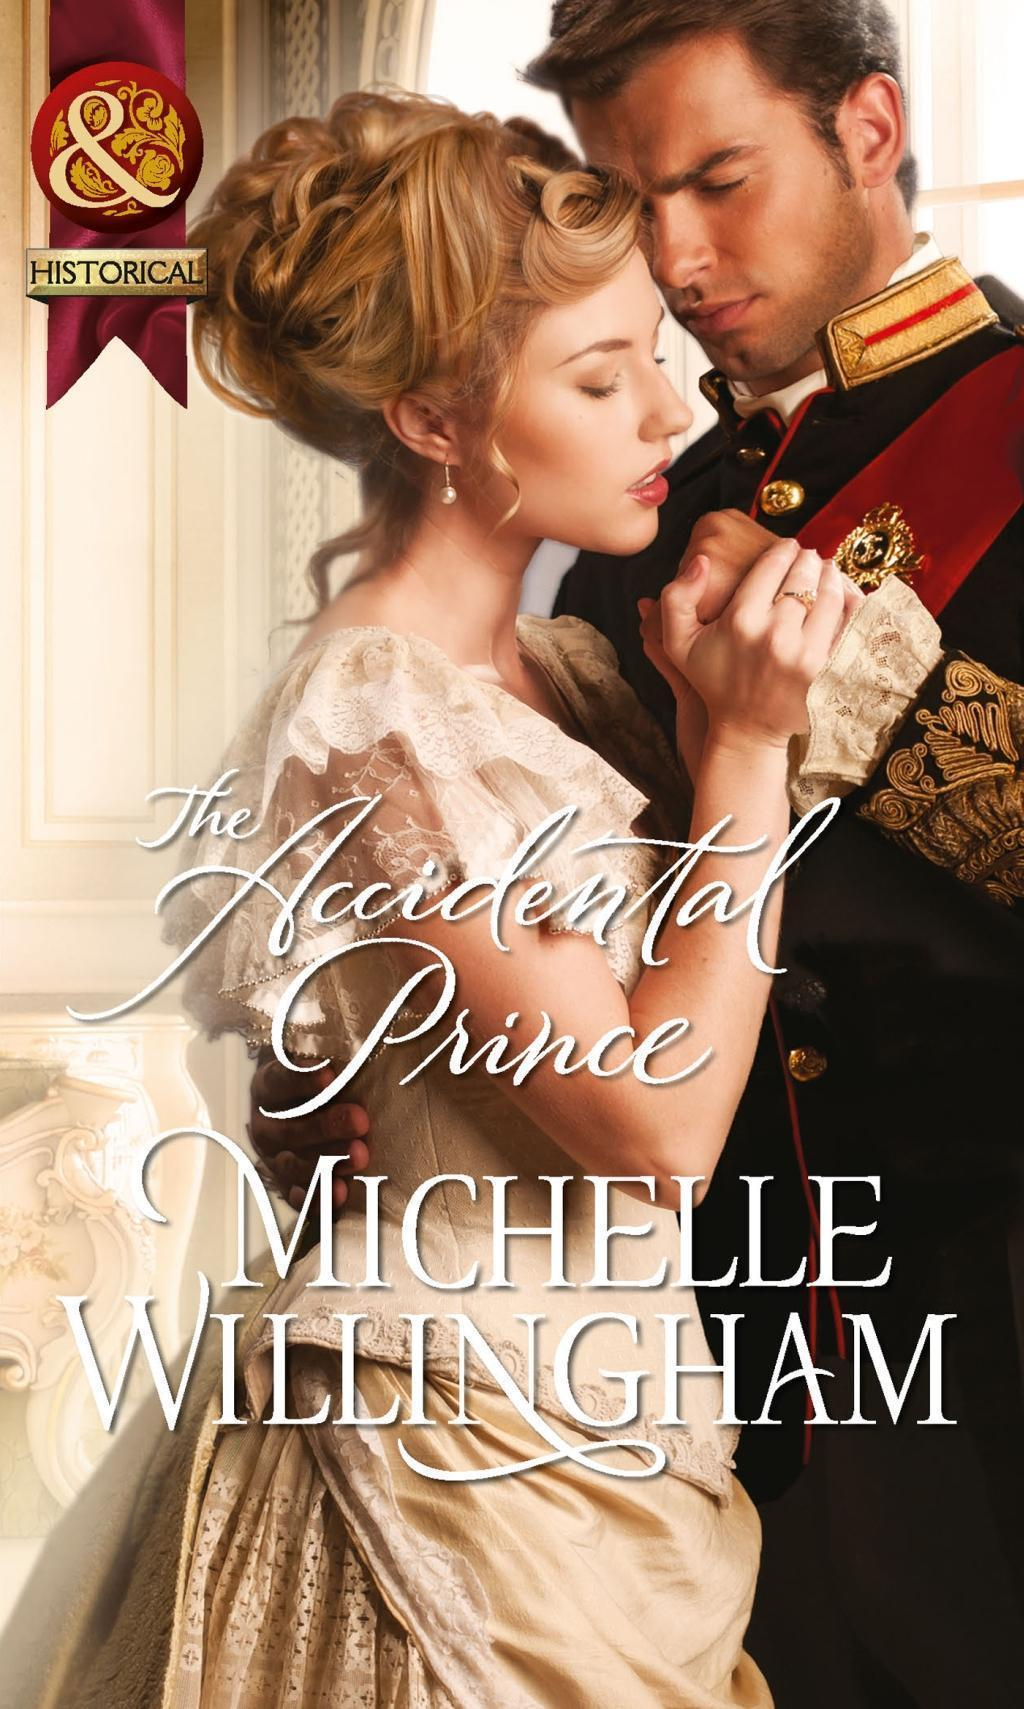 The Accidental Prince (Mills & Boon Historical)